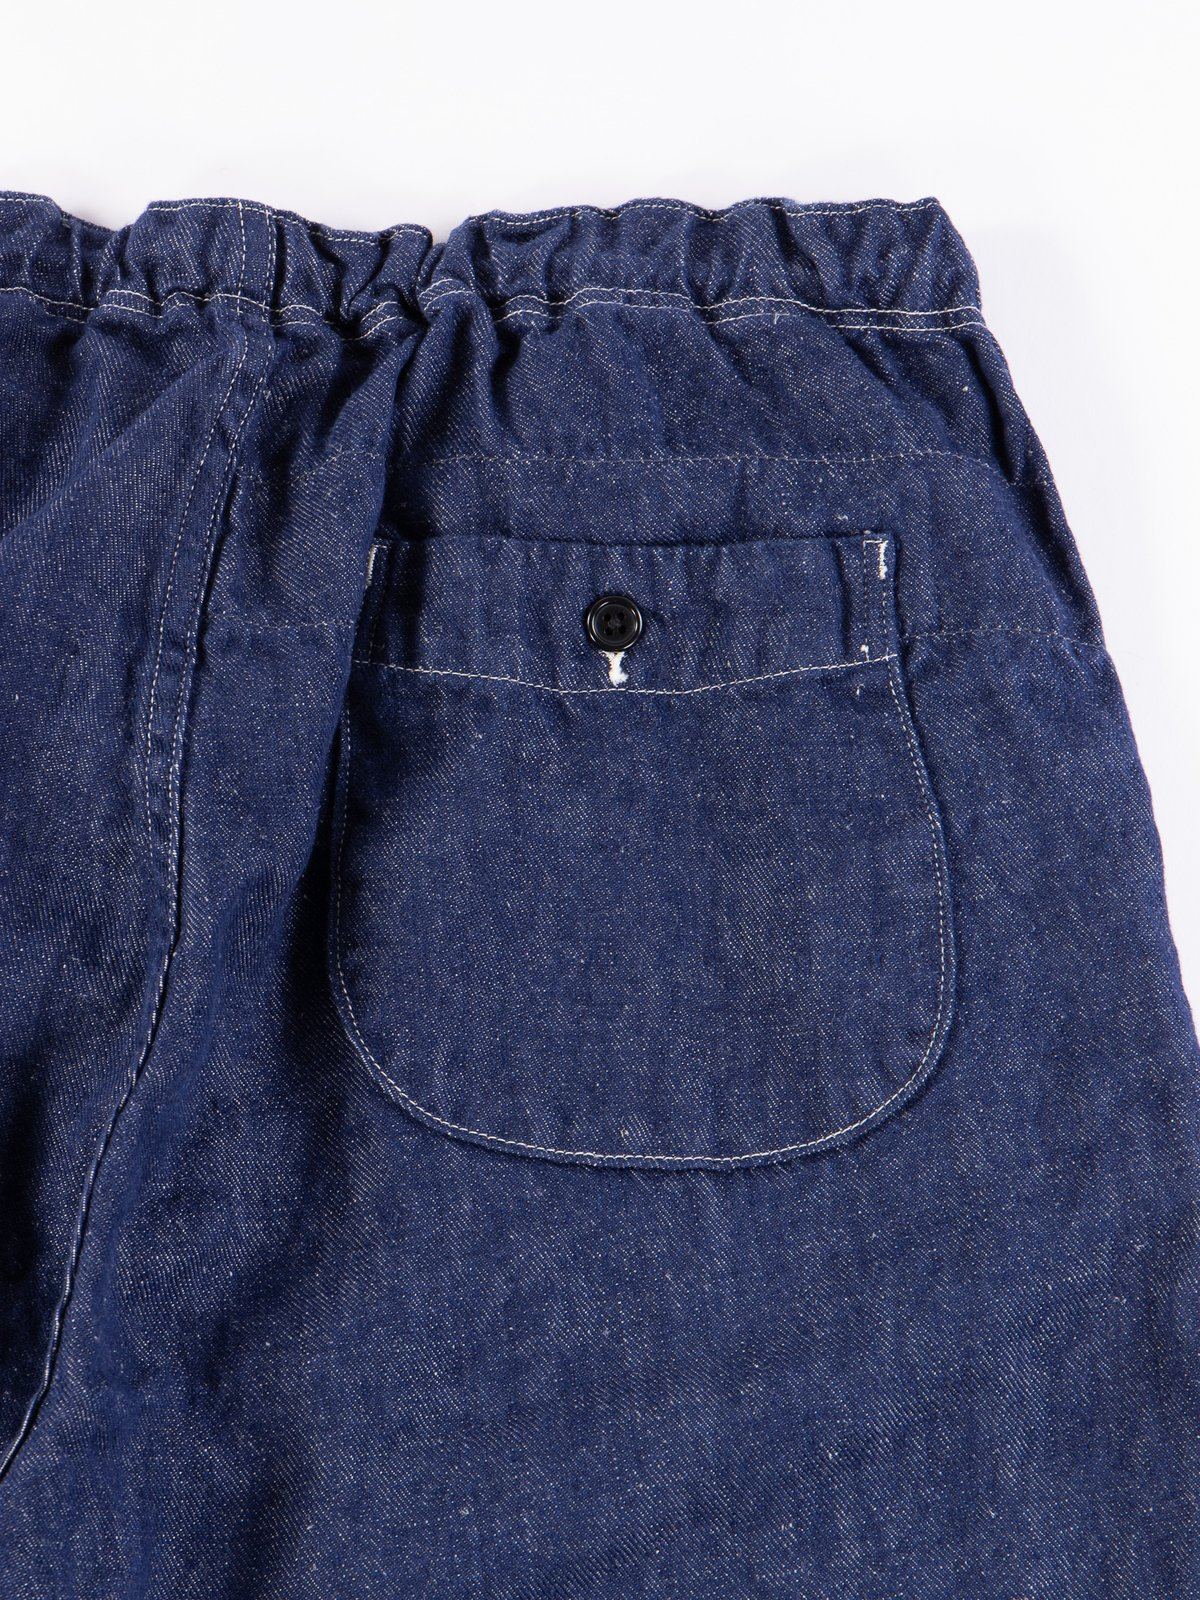 One Wash Denim TBB Mill Pant - Image 7